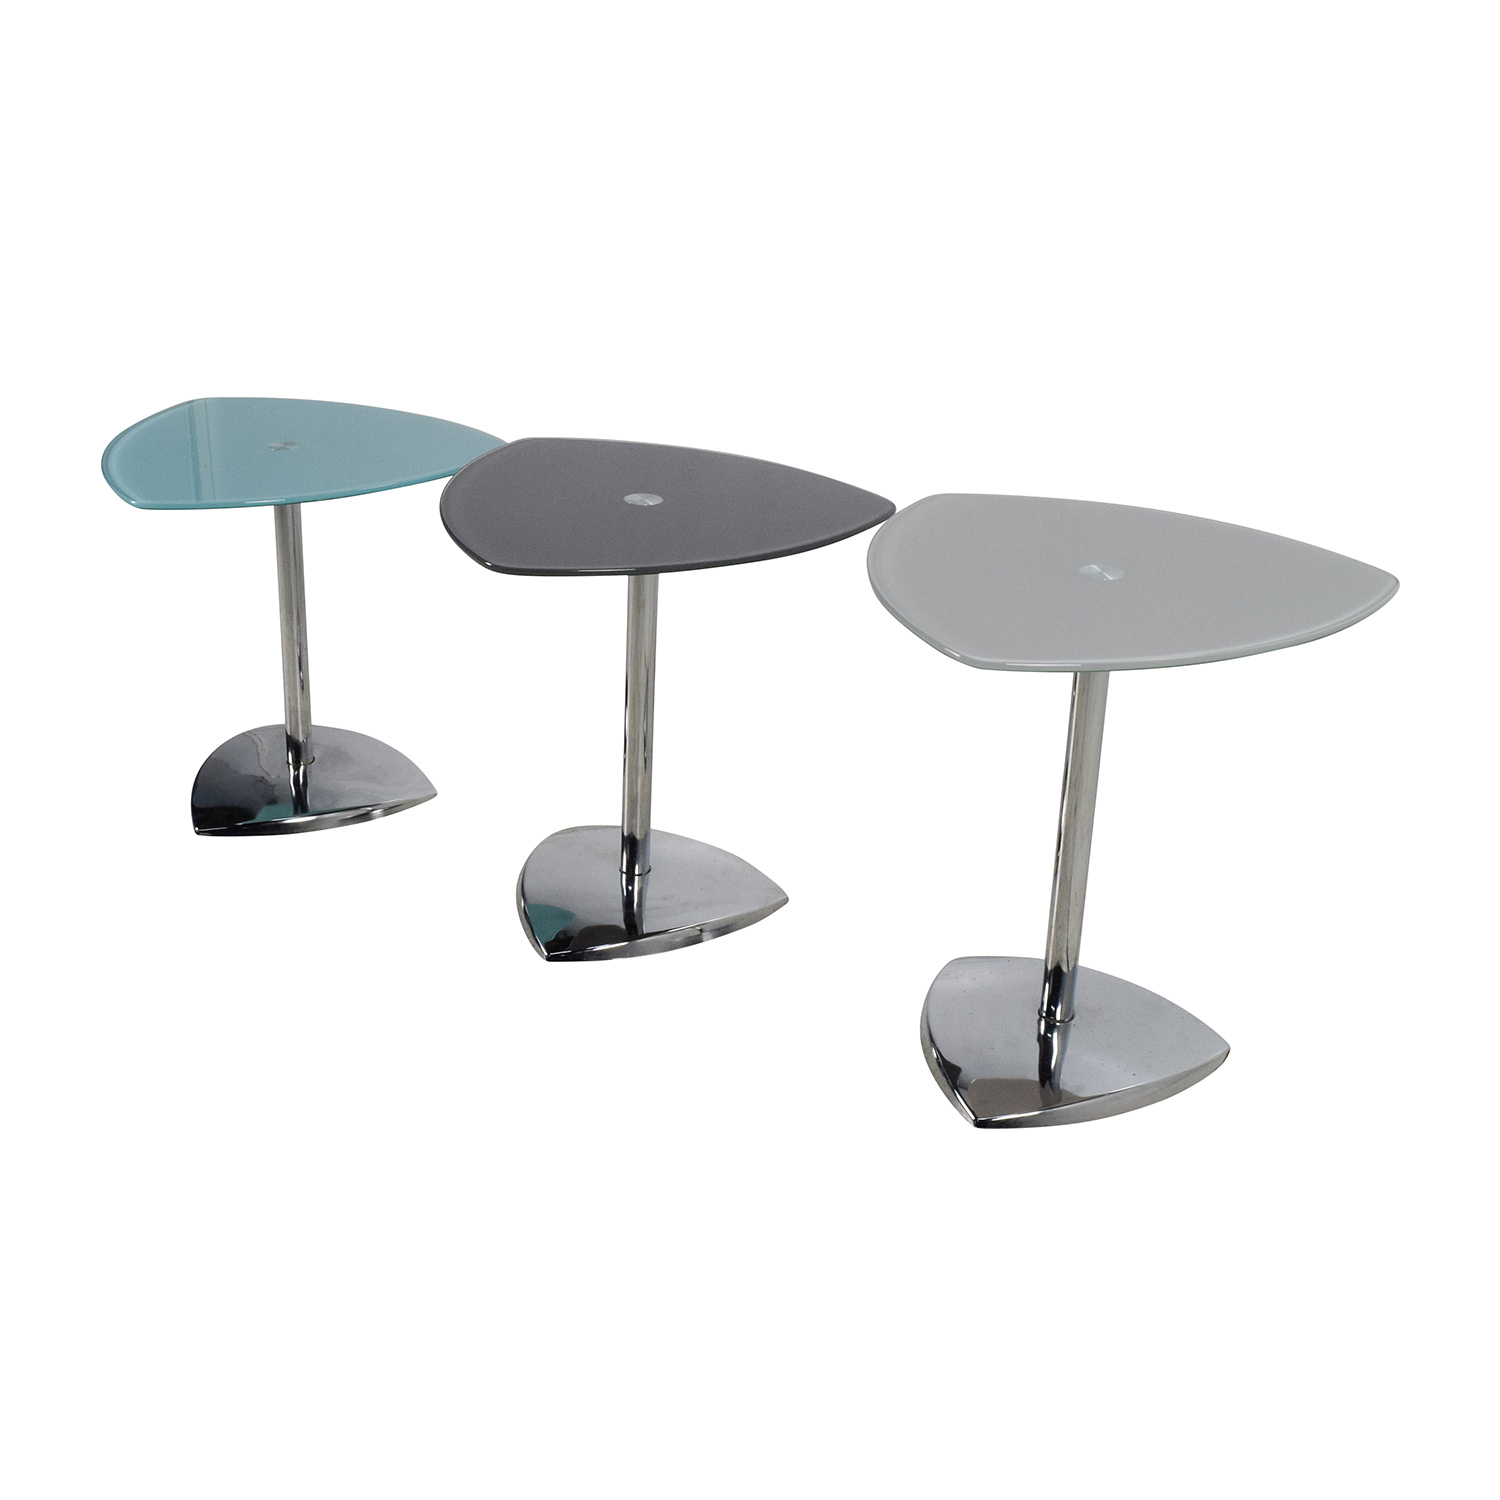 86 off set of 3 glass side tables tables Side table and coffee table set